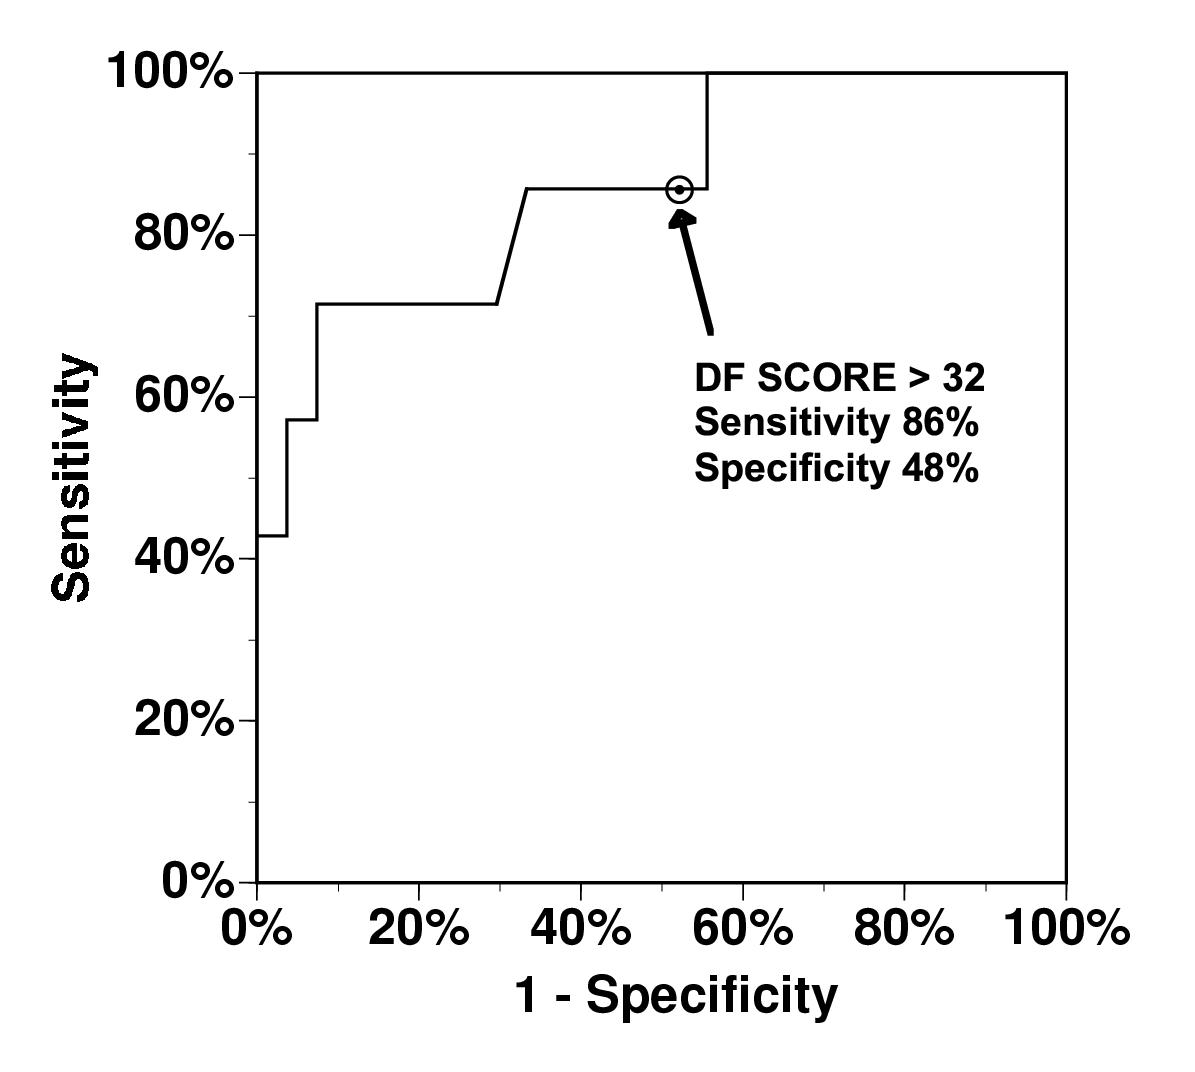 https://static-content.springer.com/image/art%3A10.1186%2F1471-230X-2-2/MediaObjects/12876_2001_Article_16_Fig2_HTML.jpg